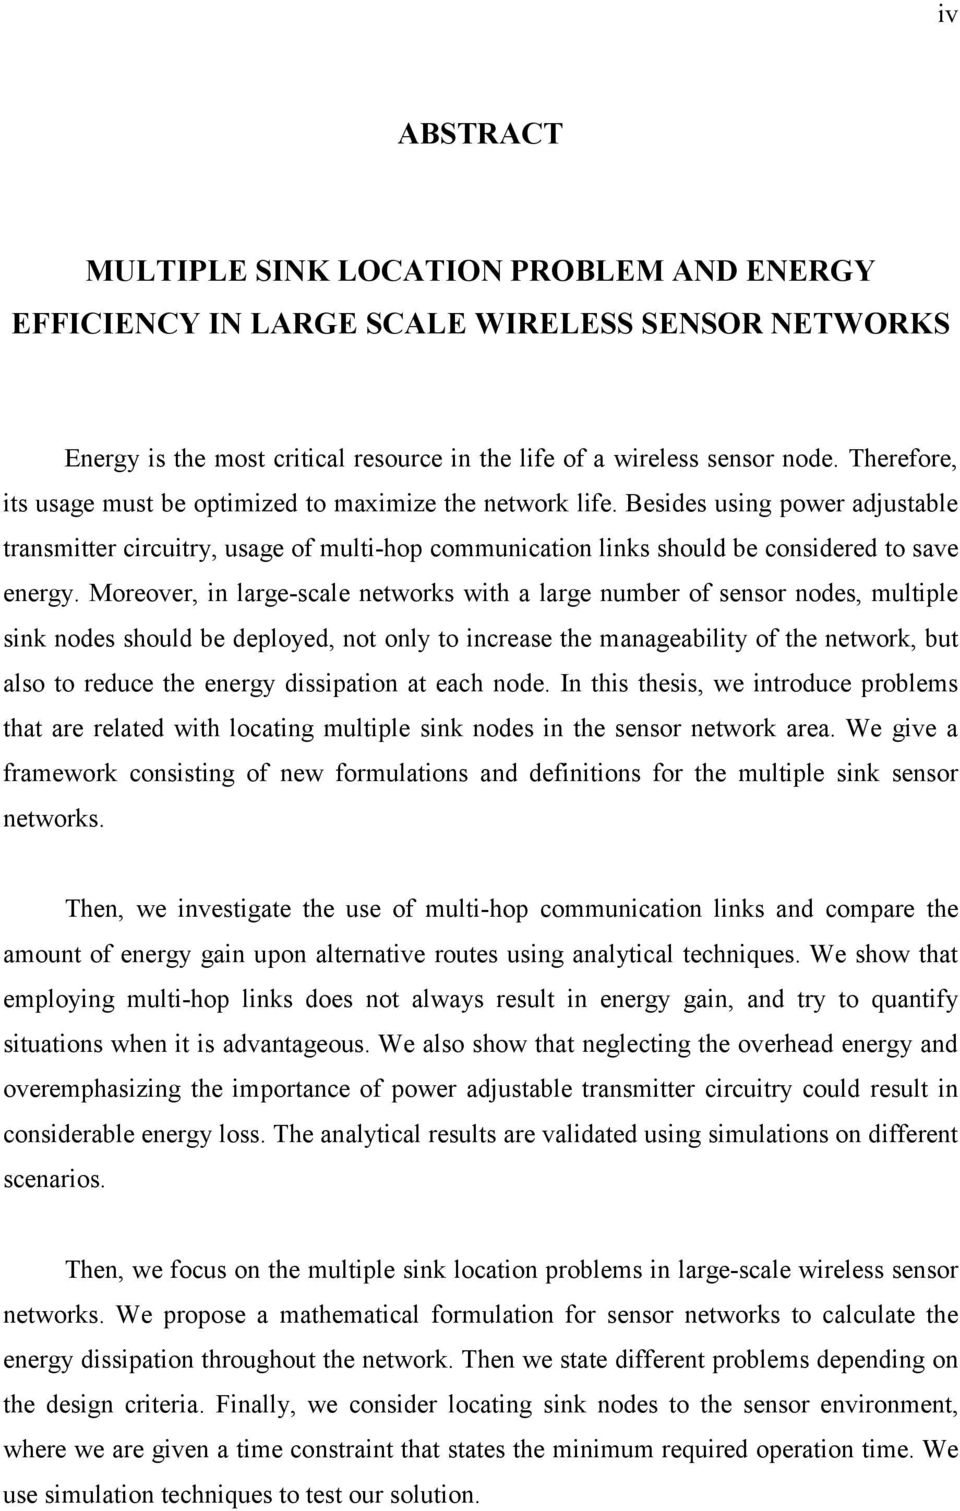 Moreover, in large-cale network with a large number of enor node, multiple ink node hould be deployed, not only to increae the manageability of the network, but alo to reduce the energy diipation at